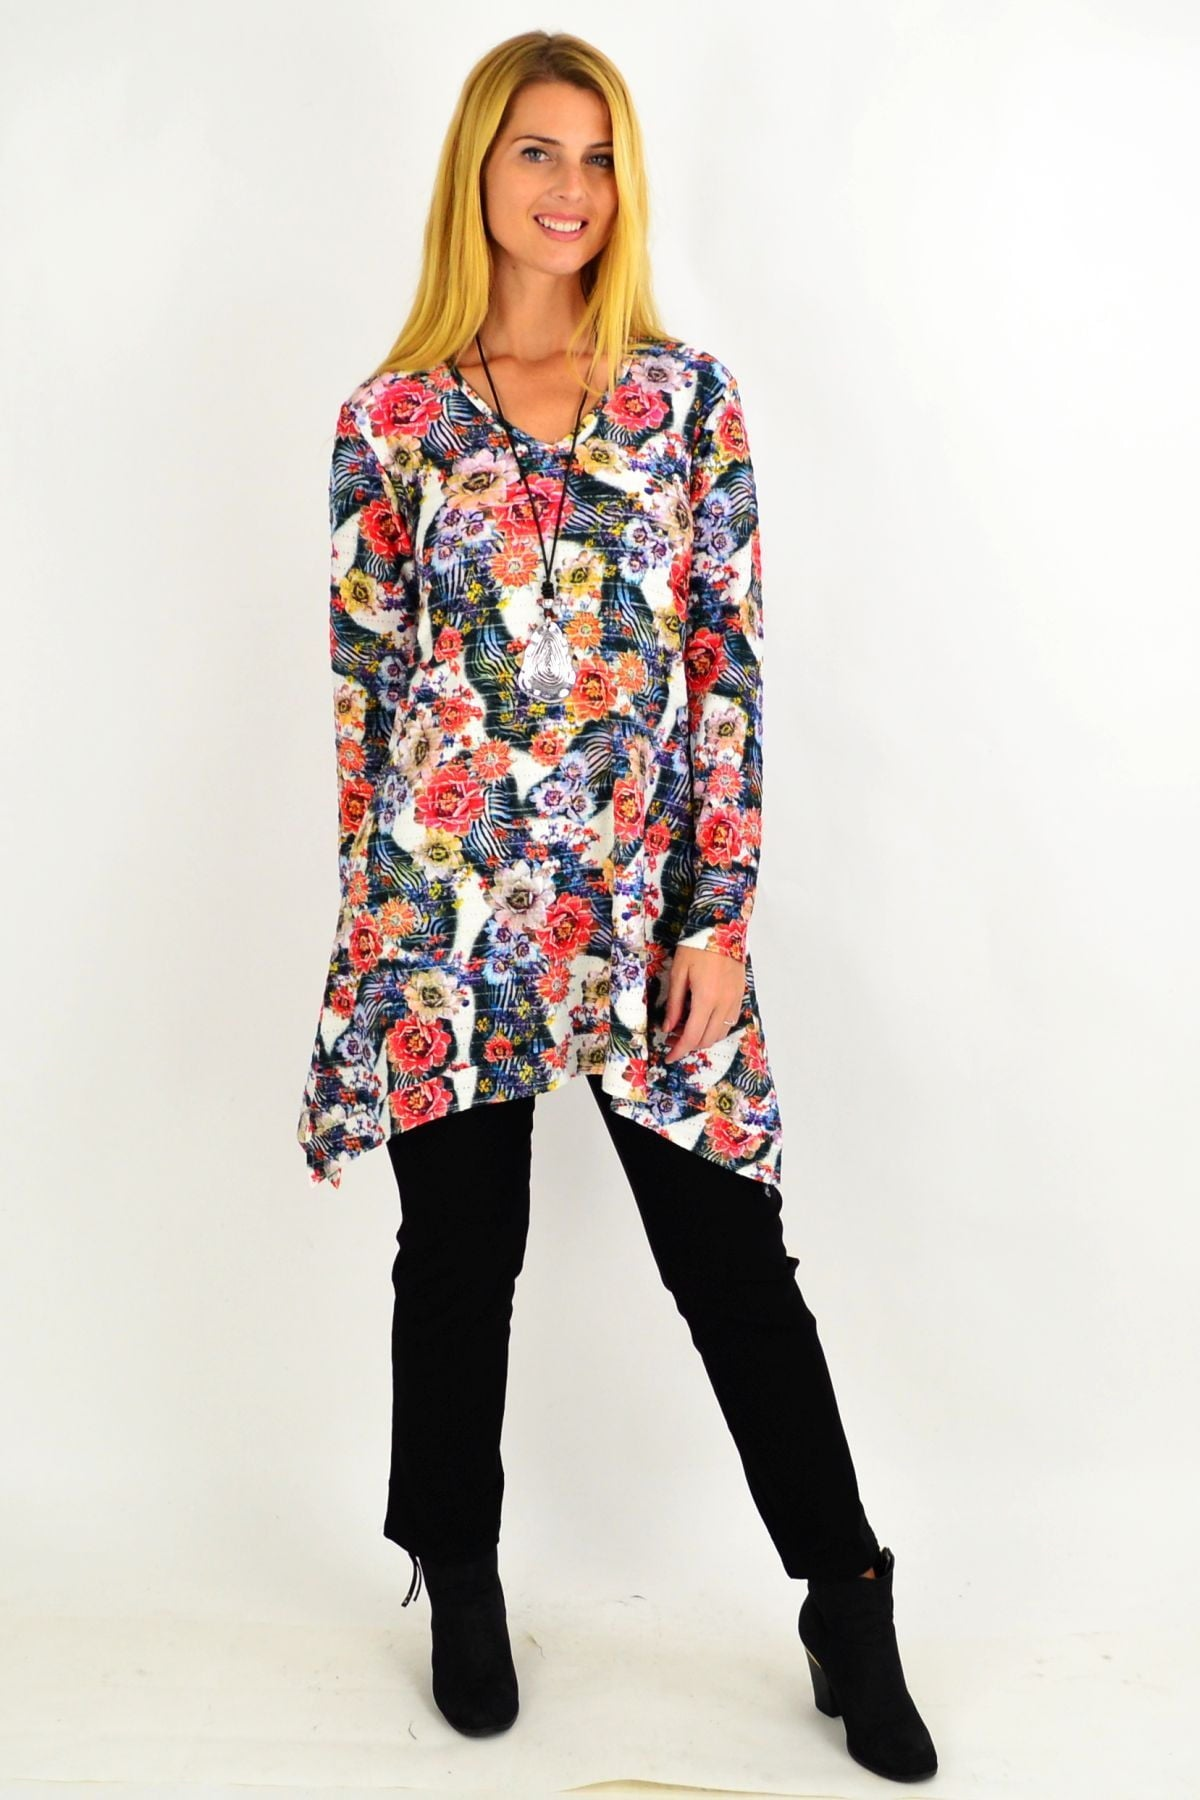 Floral Layla Swing Tunic Top | I Love Tunics | Tunic Tops | Tunic | Tunic Dresses  | womens clothing online